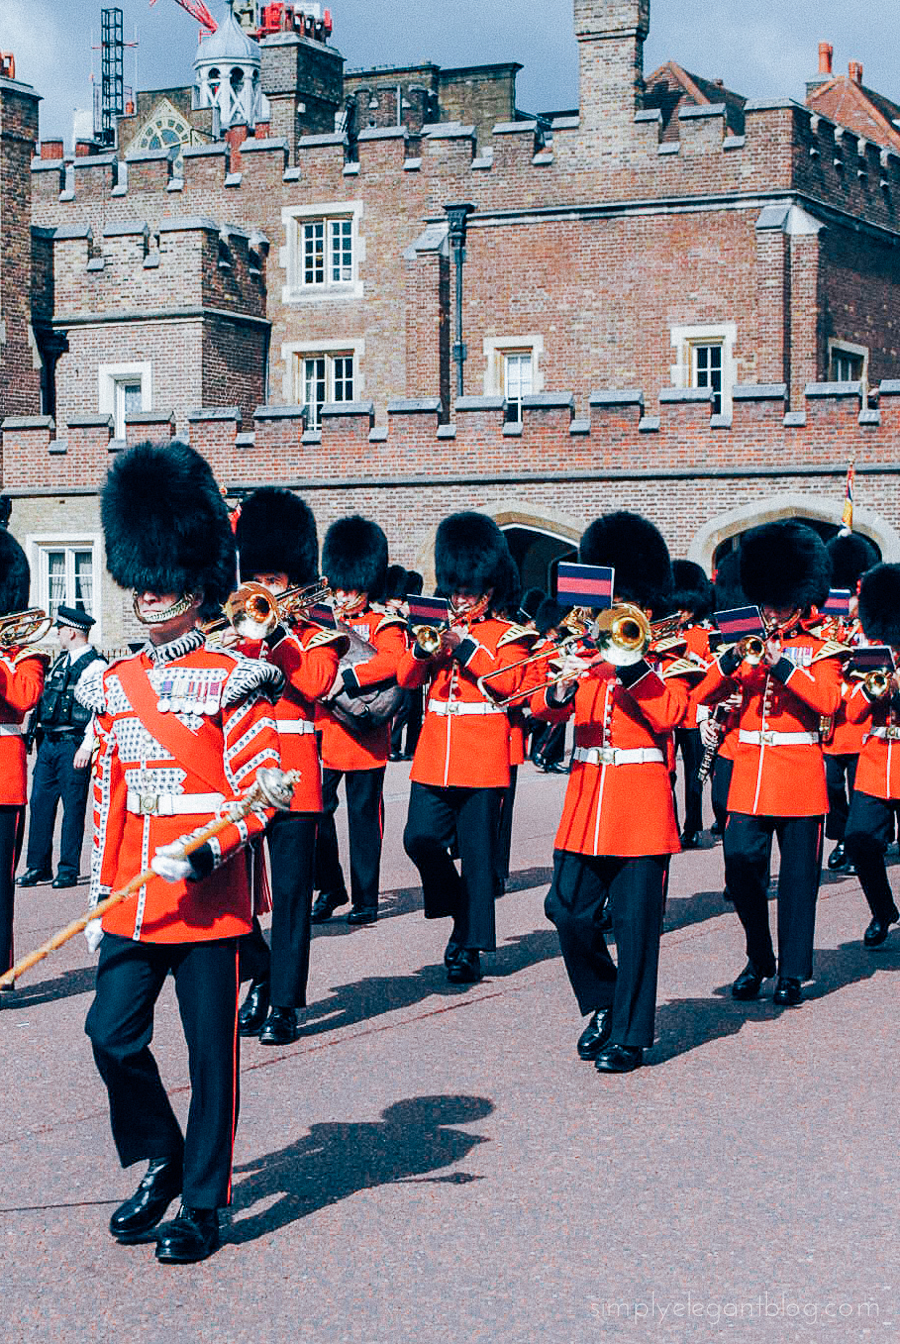 Simply Elegant / London Vacation Photographs - Changing Guards